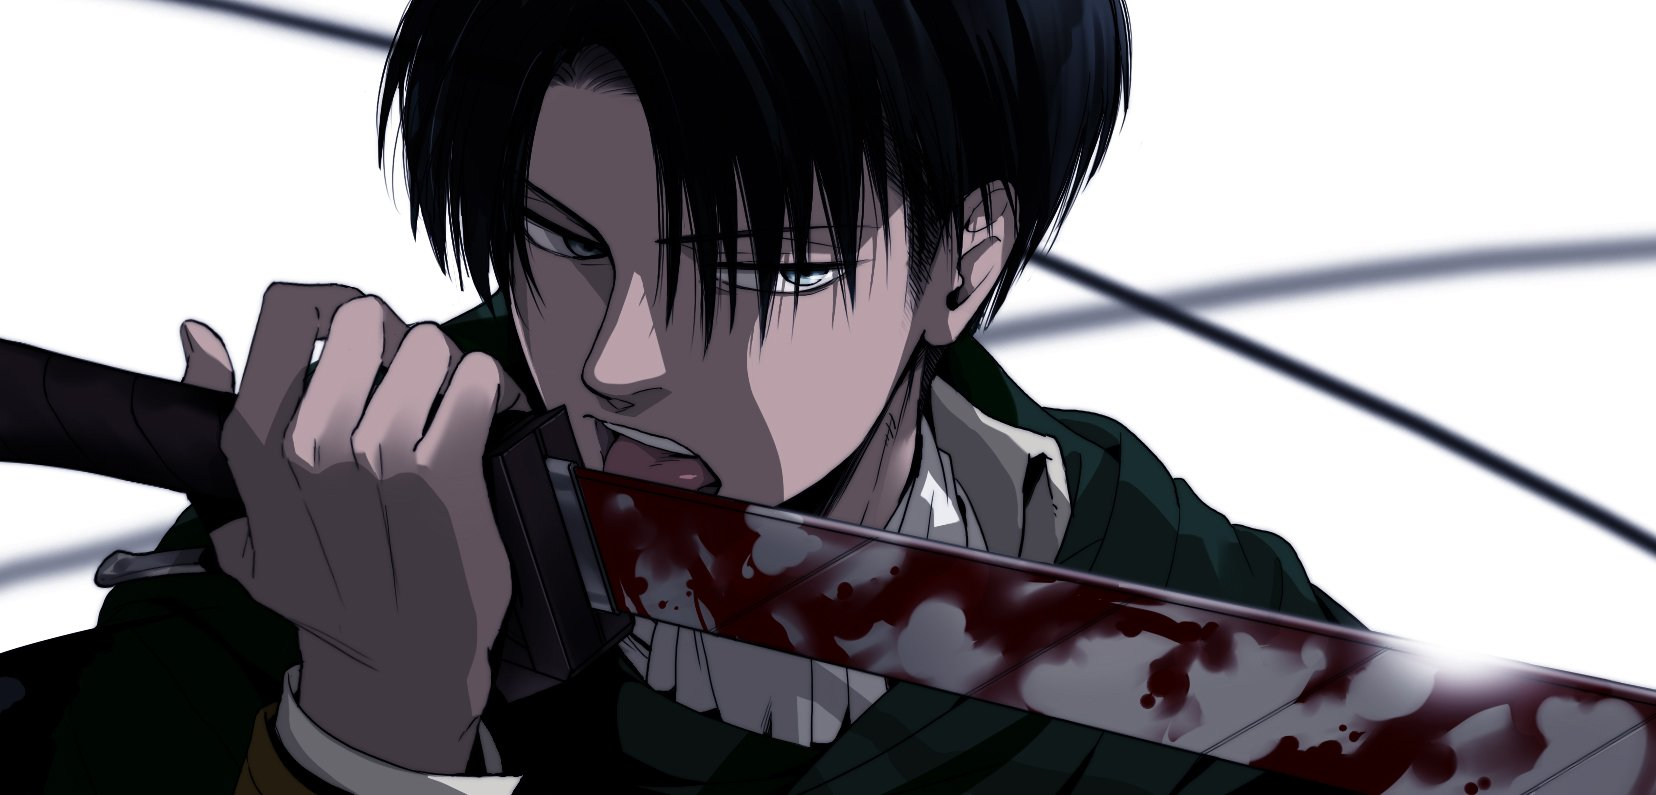 Levi Rivaille Shingeki no Kyojin images Levi wallpaper photos 1656x795